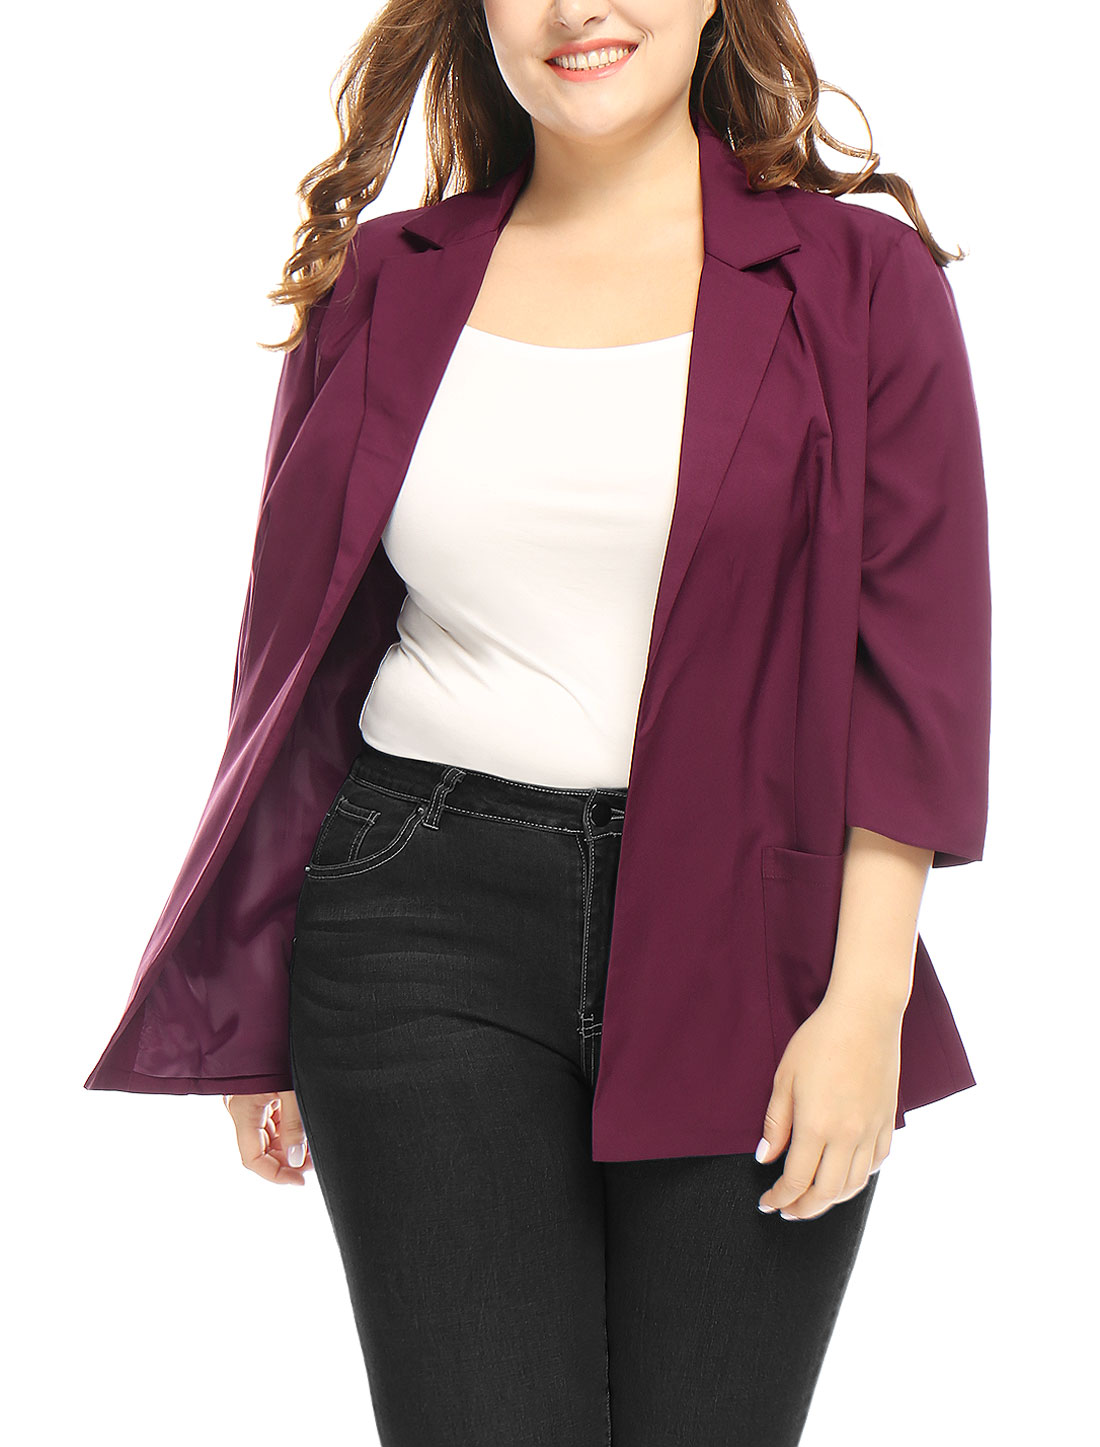 Unique Bargains Women's Plus Size 3/4 Sleeves Open Front Collared Blazer Red (Size 2X)